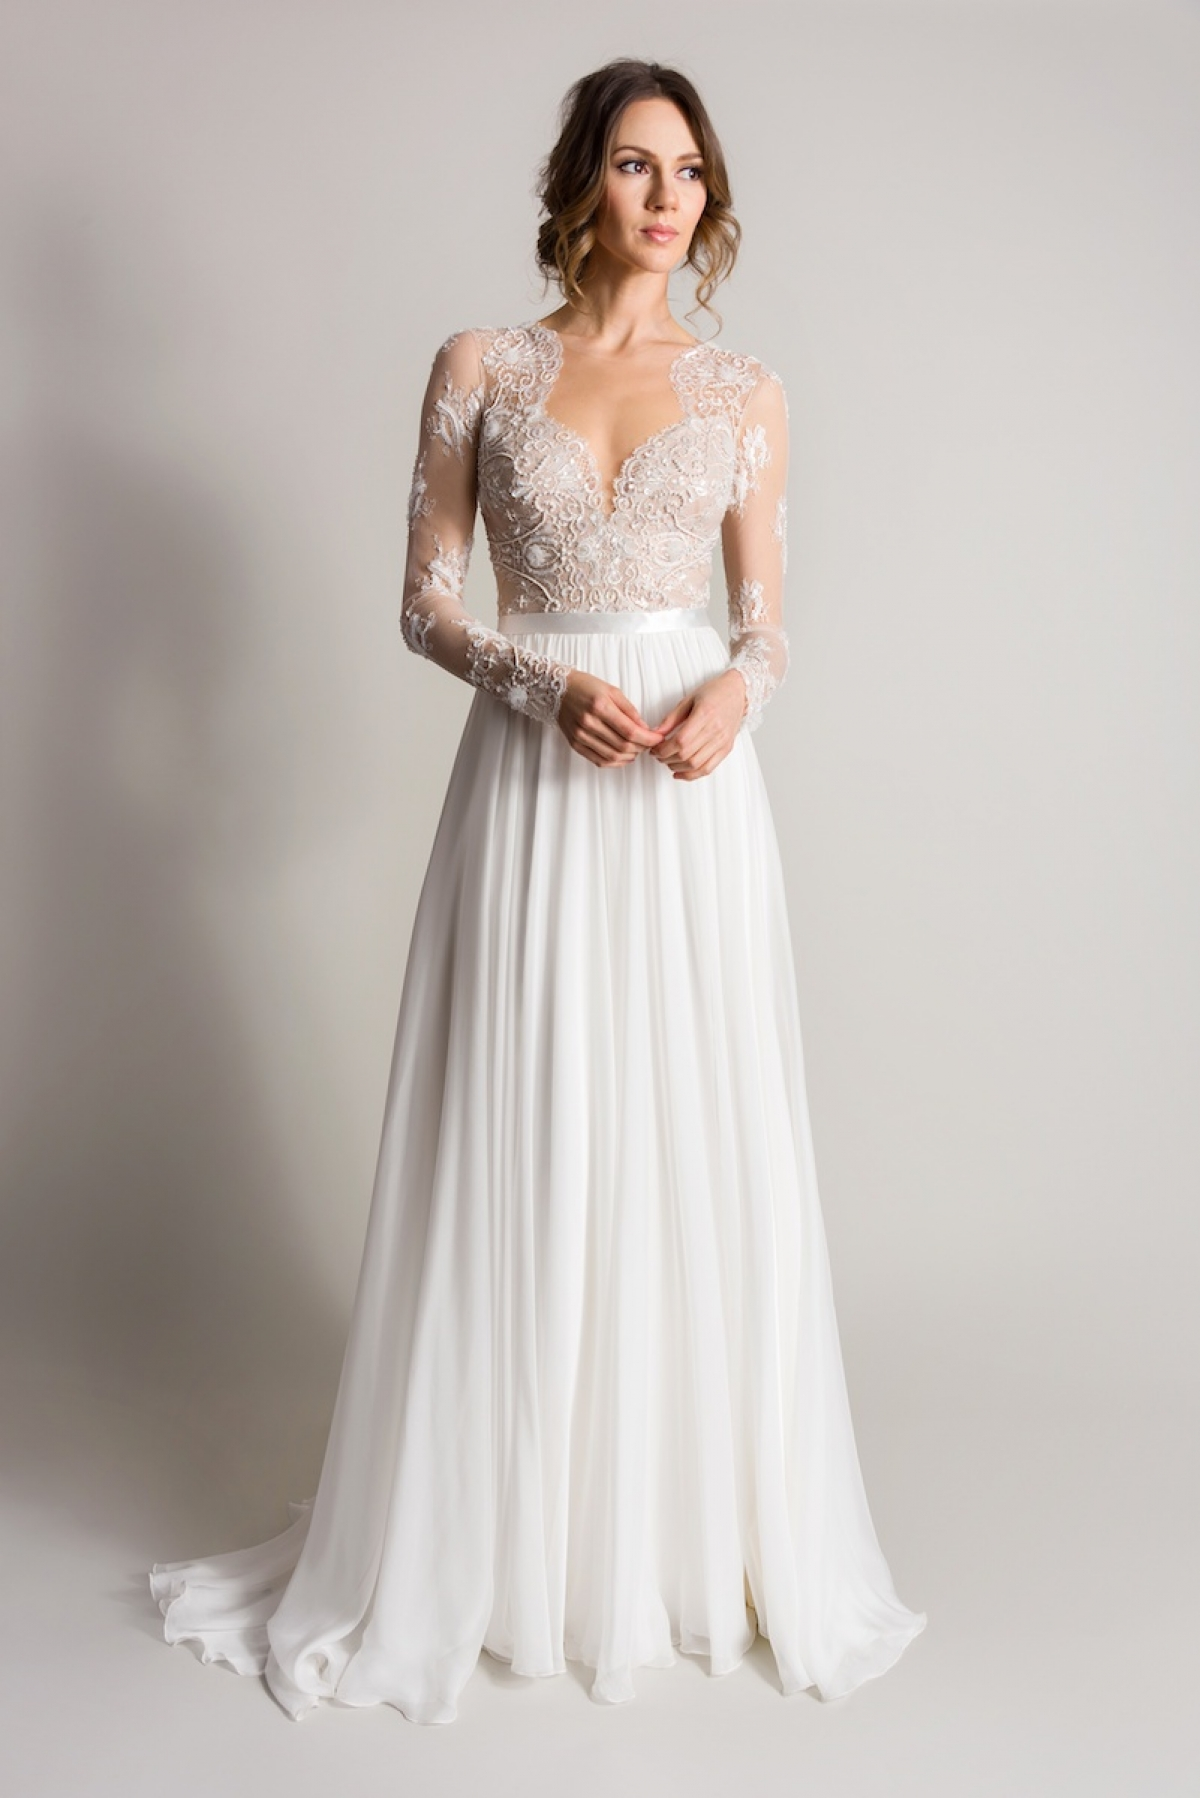 Nude Wedding Dresses